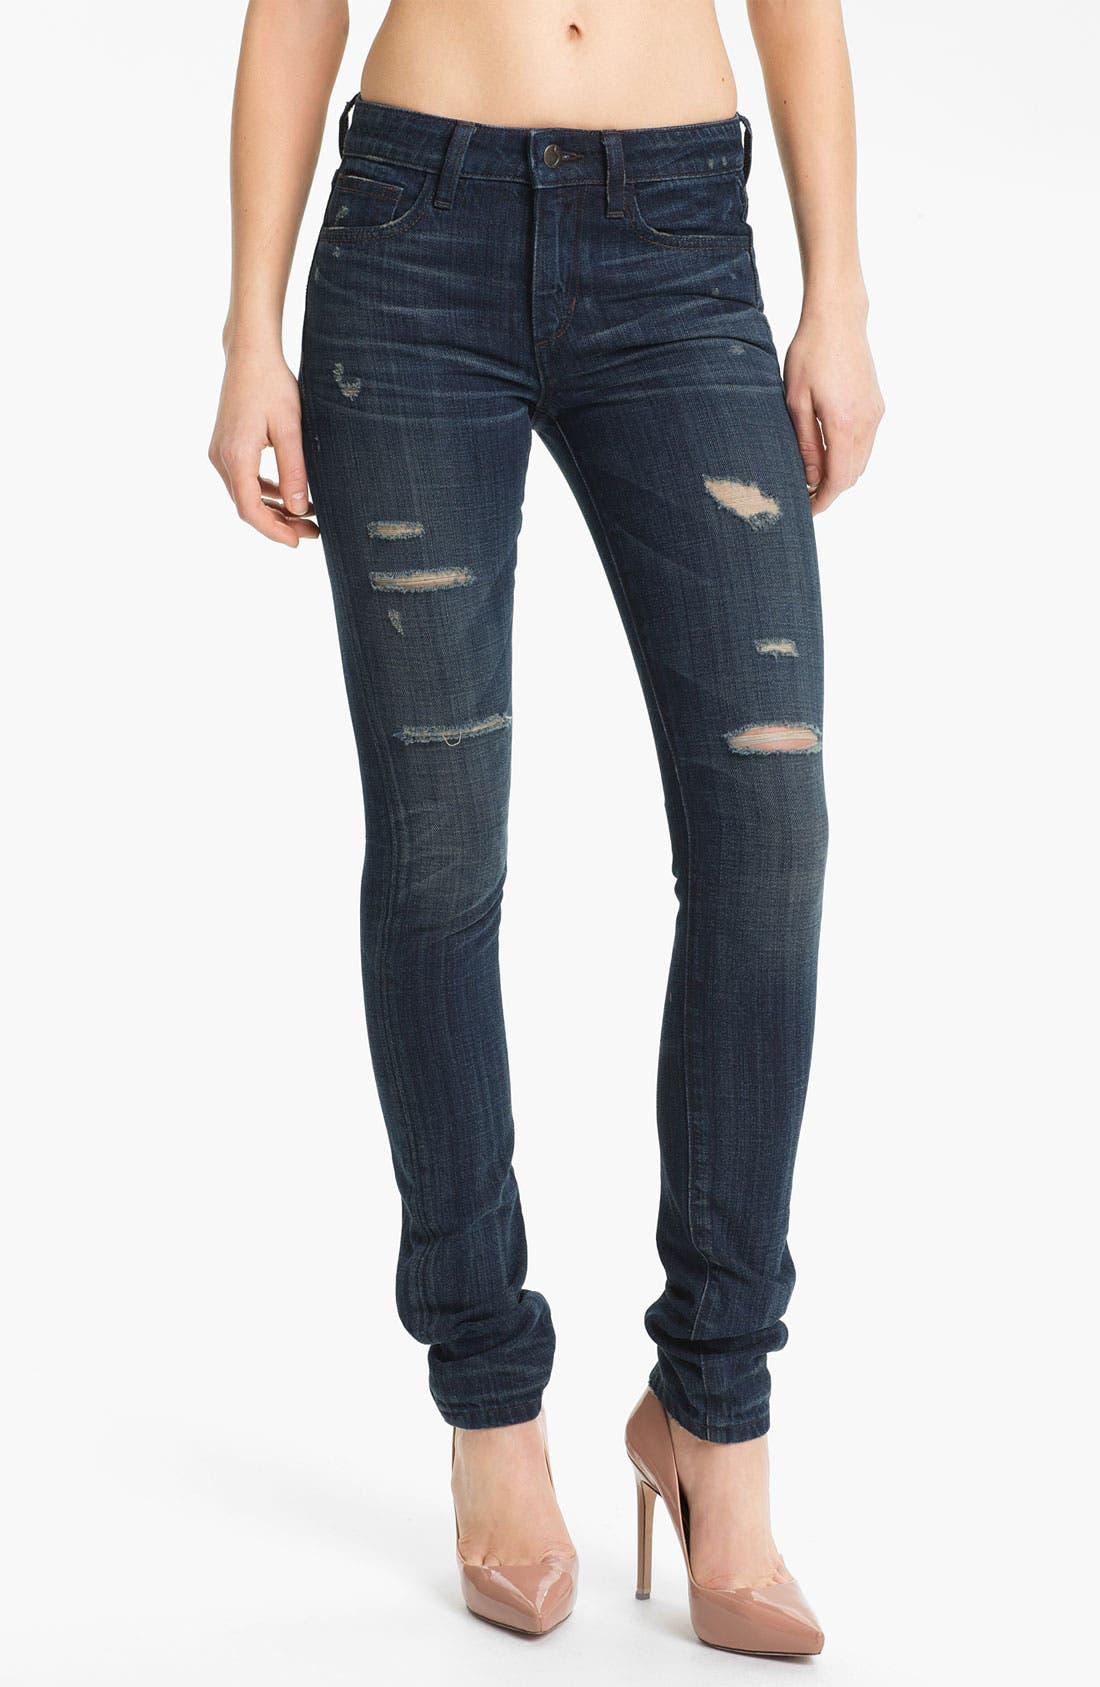 Alternate Image 1 Selected - Joe's 'The Skinny' Distressed Stretch Jeans (Macey)